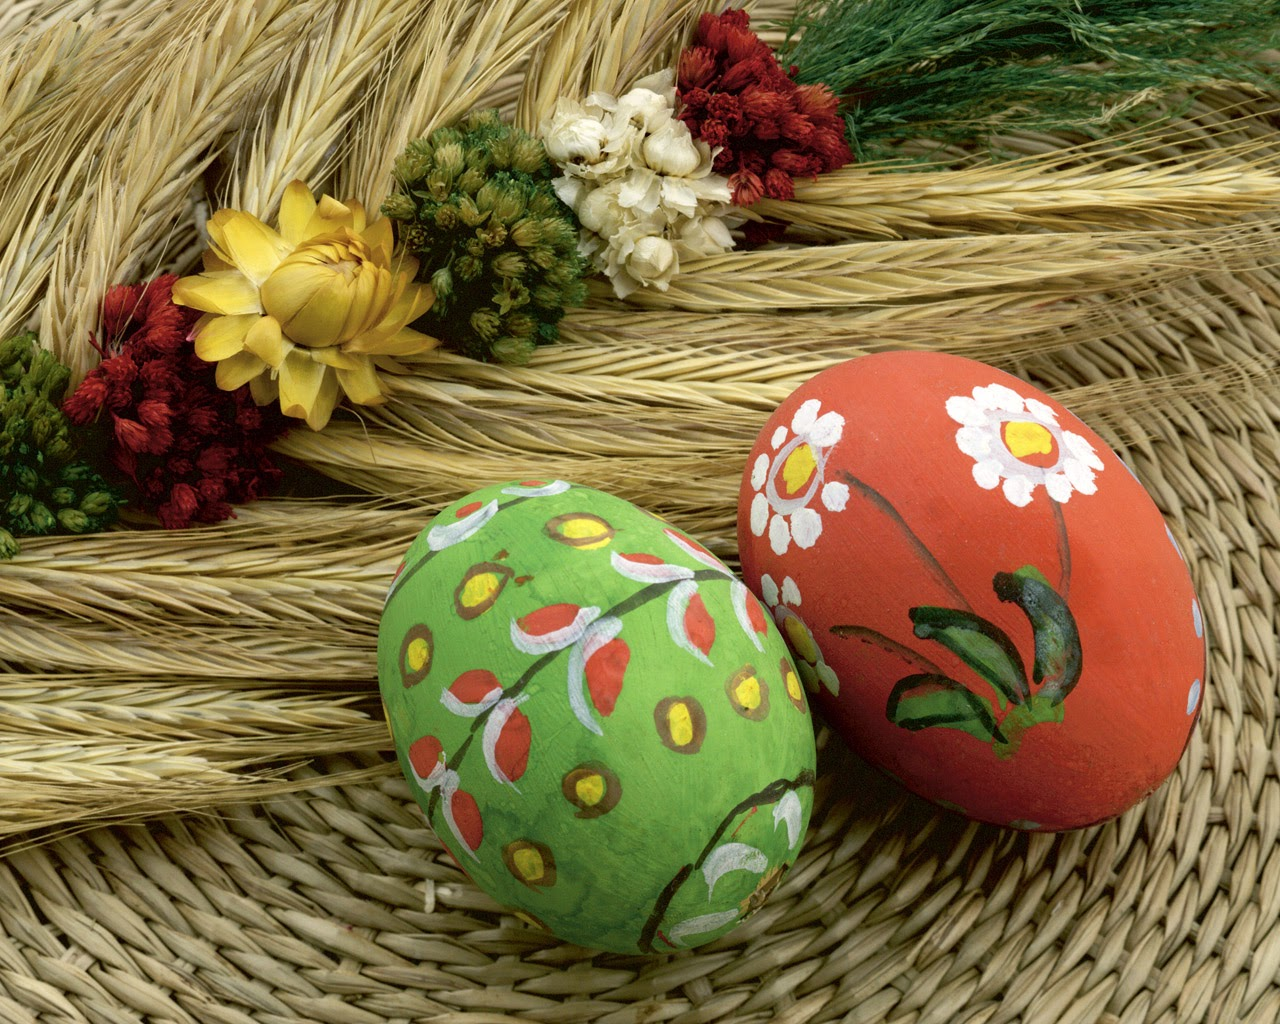 Using wax for easter eggs